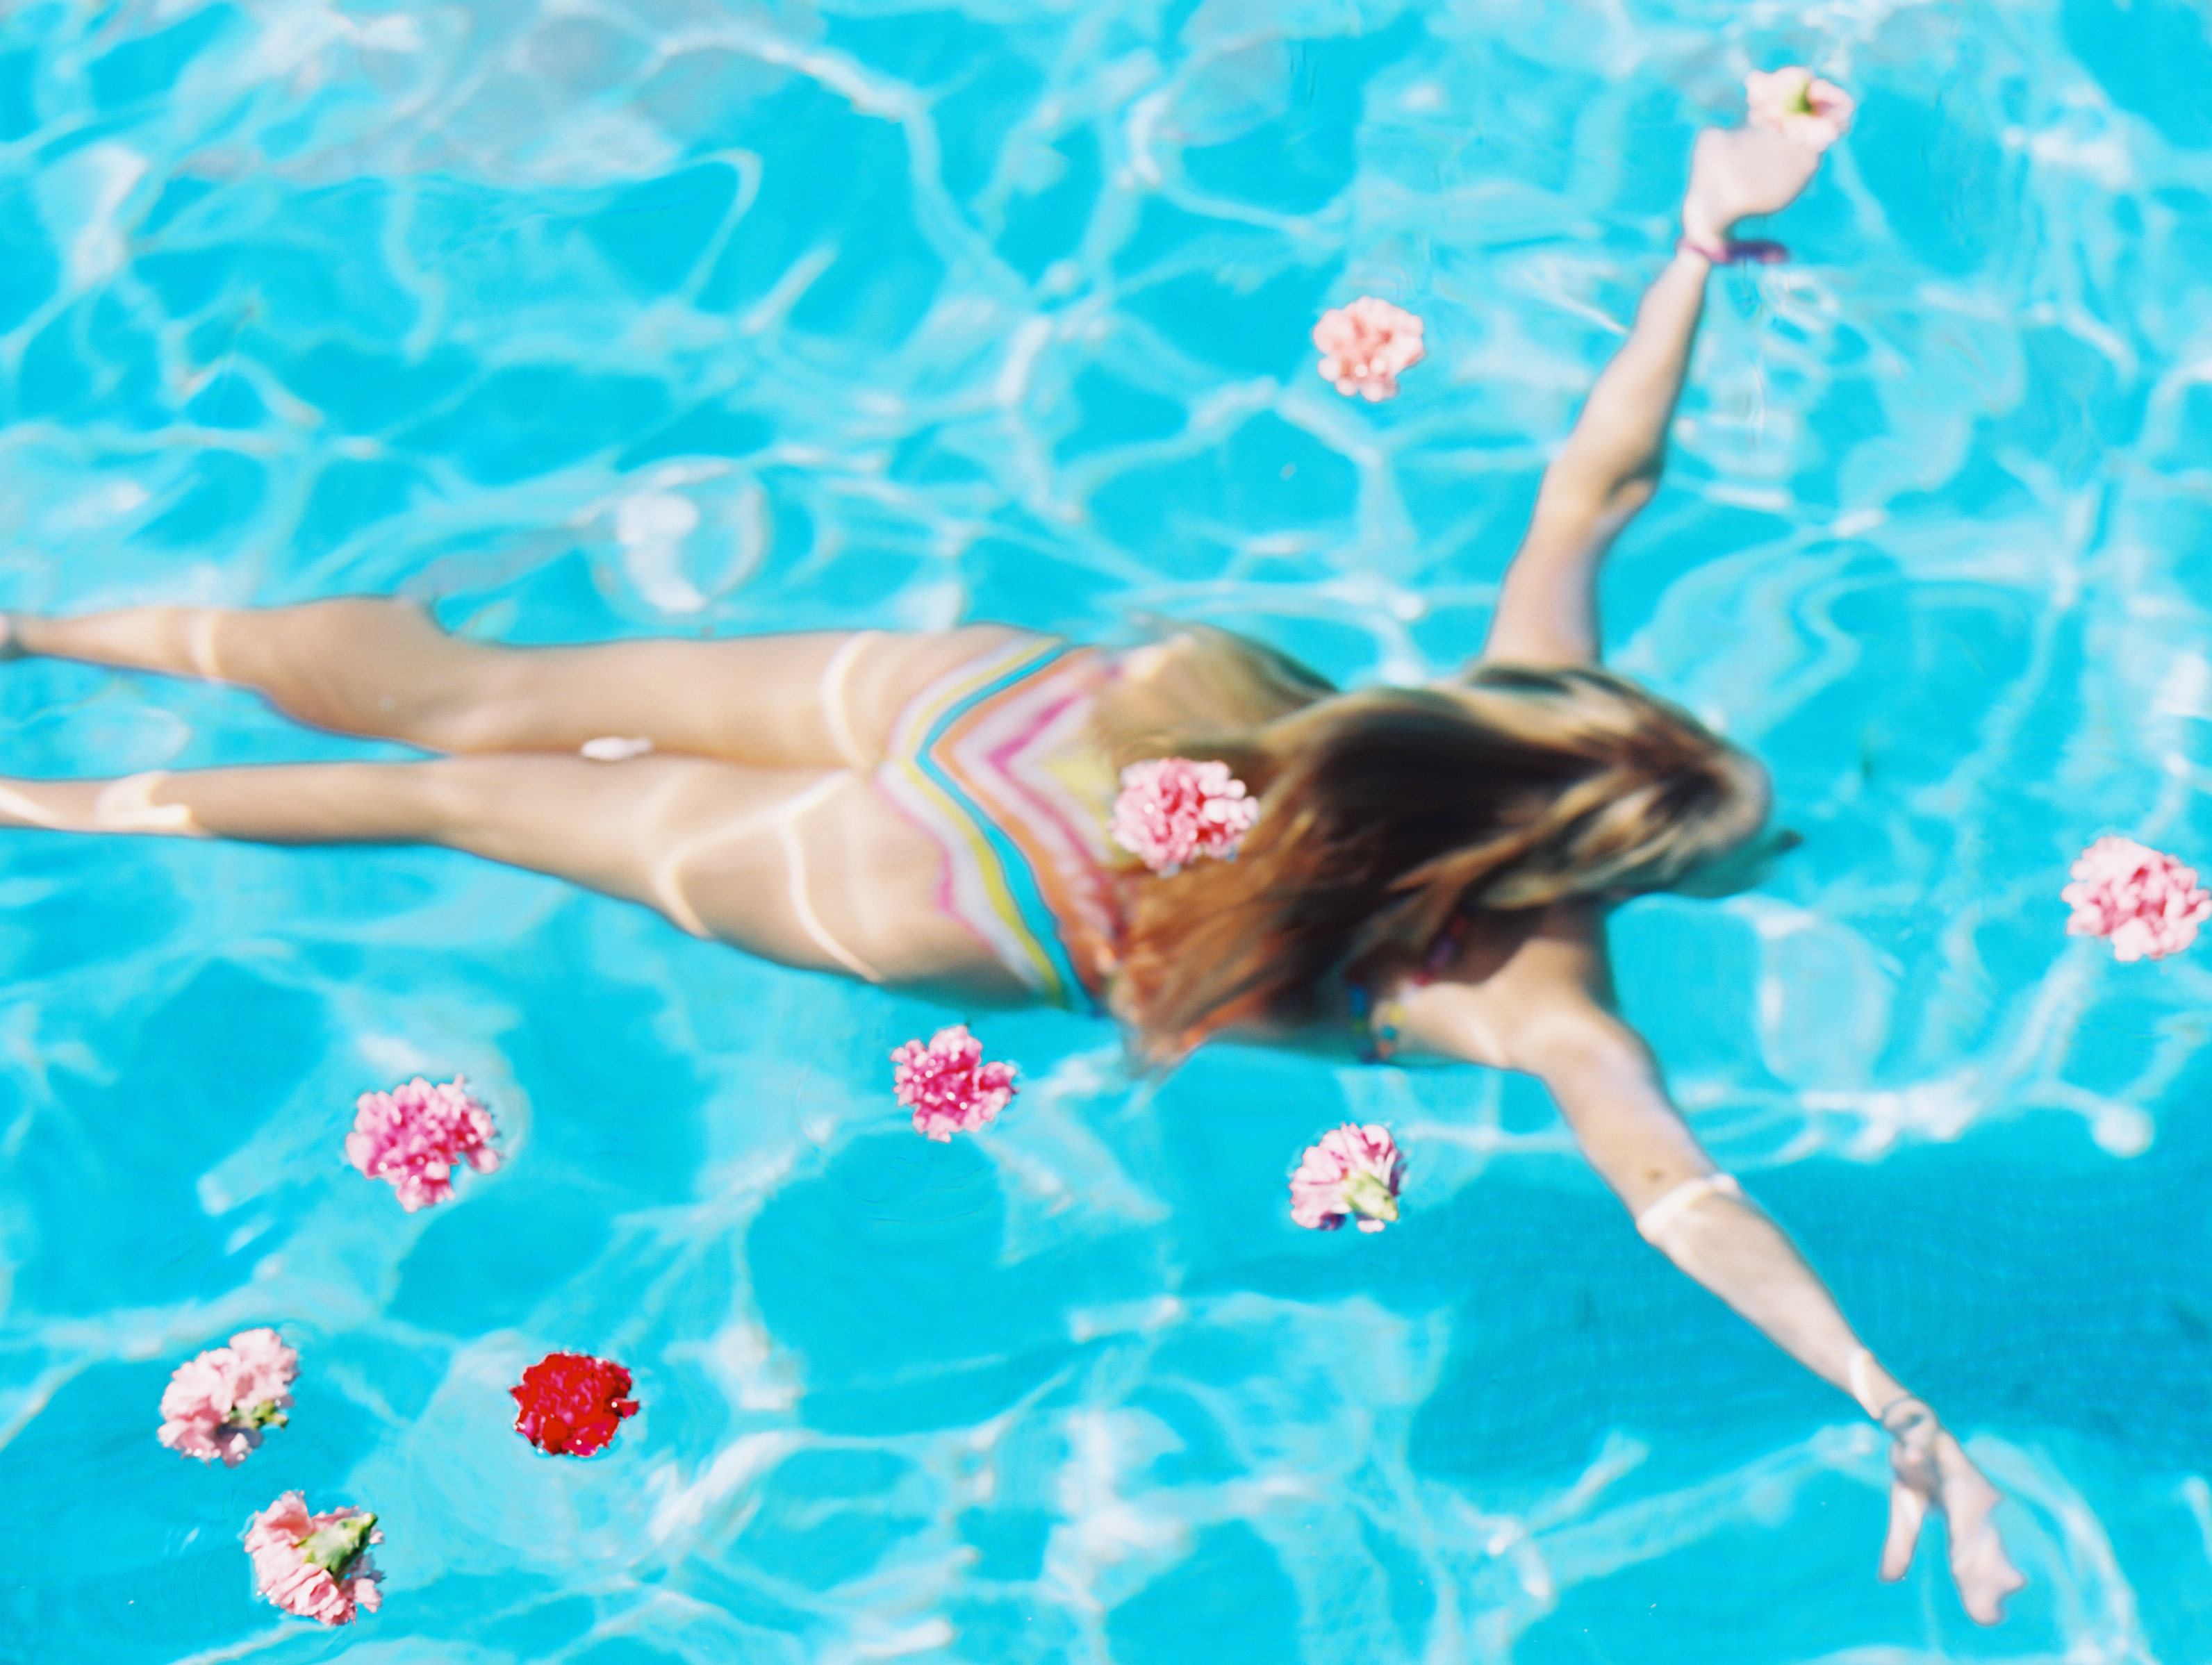 maui photographer wendy laurel's image of girl in rainbow suit in pool with flowers